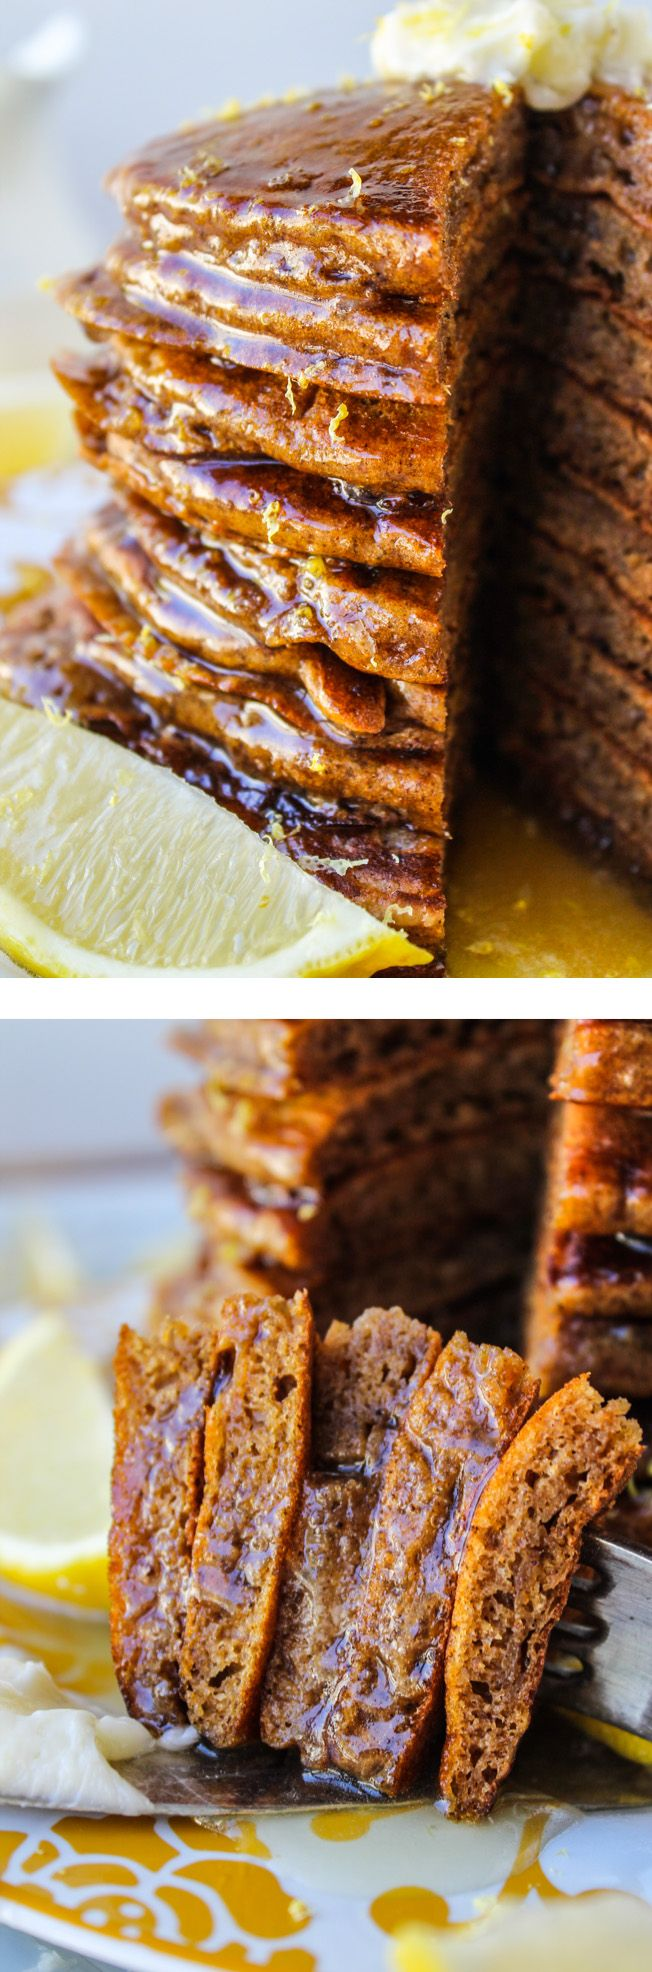 Gingerbread Pancakes with Lemon Syrup - The Food Charlatan // These would be the perfect pancakes for Christmas morning! Lemon Buttermilk Syrup is where it's at.